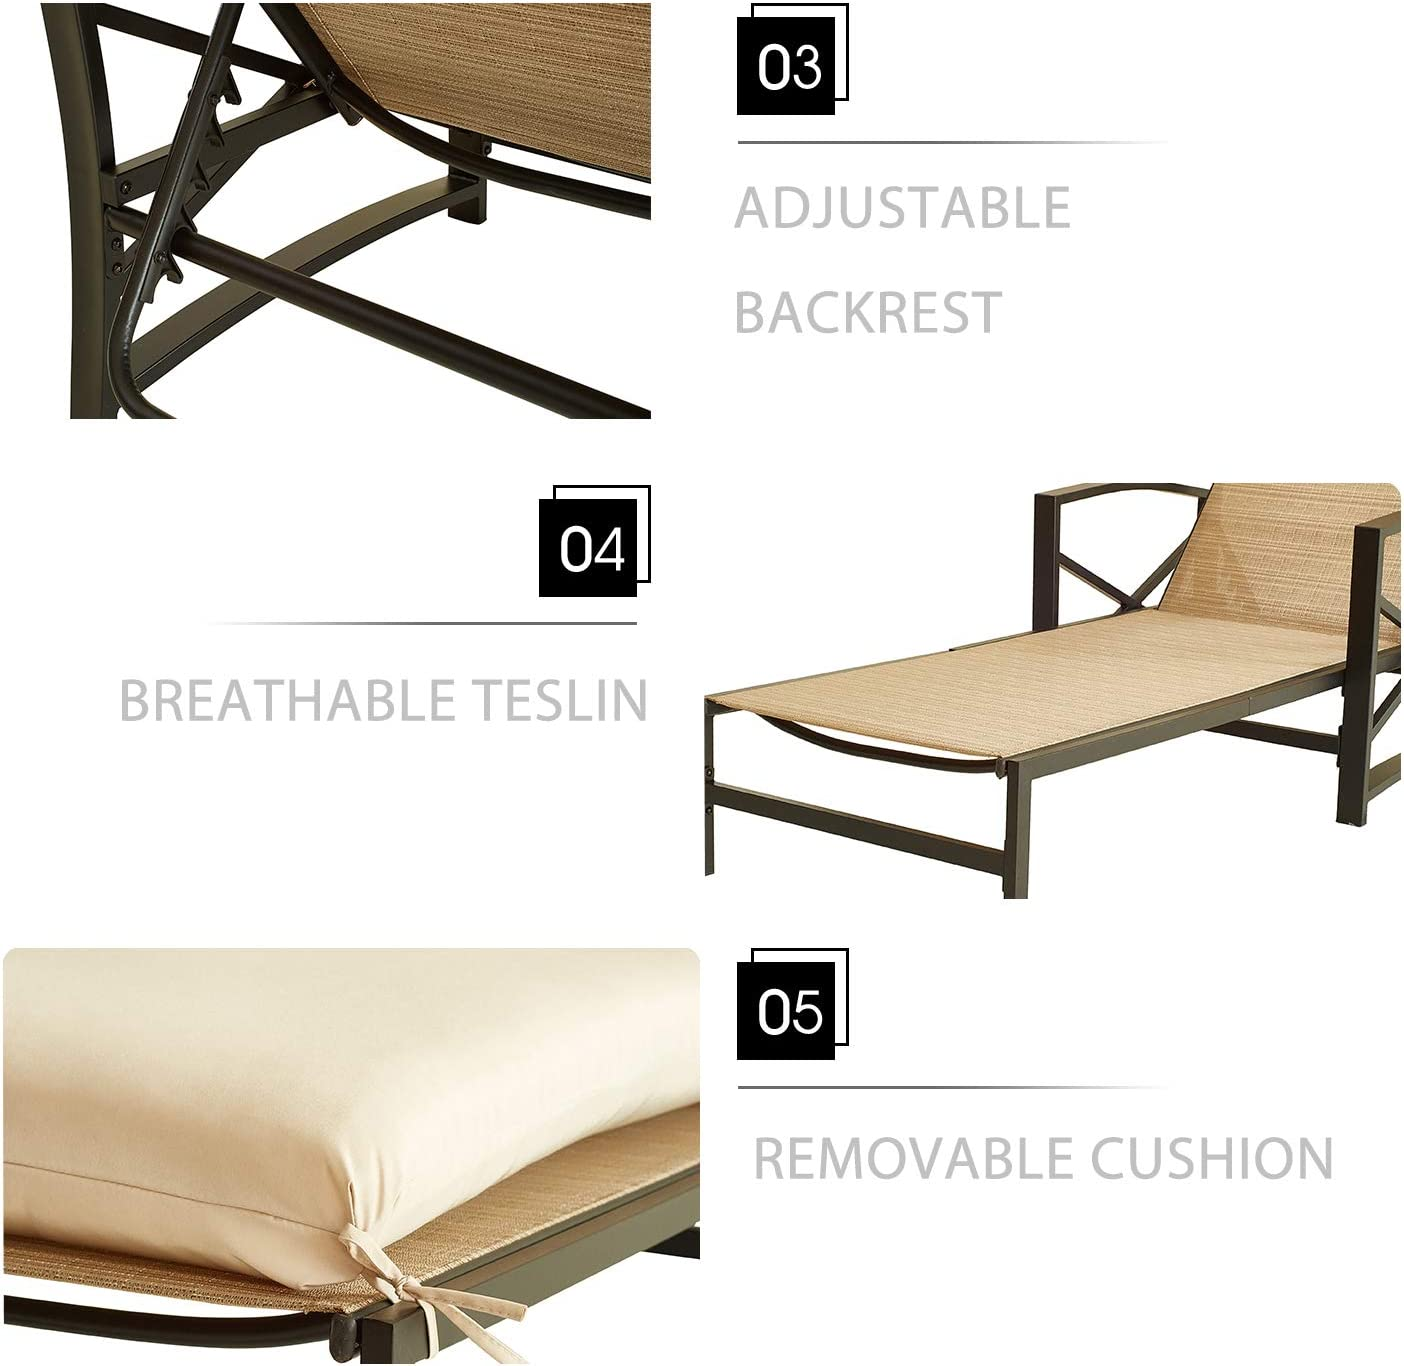 LOKATSE HOME 2 Pieces Outdoor Patio Chaise Lounge Blue Removable Cushions and Pillows with Adjustable Backrest and Armres Reclining Chairs for Beach Poolside Balcony Backyard Garden Khaki